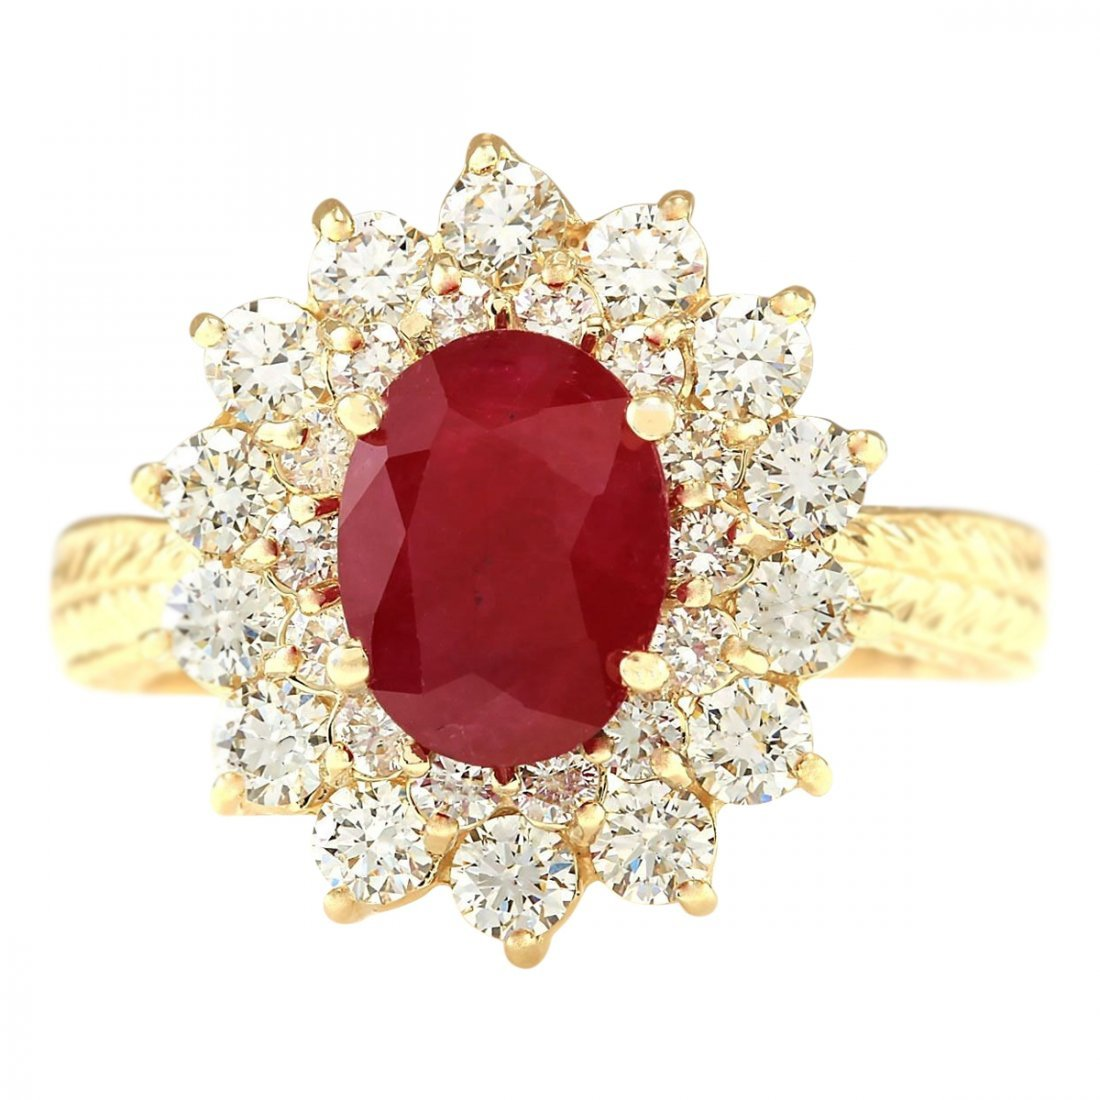 3.16 CTW Natural Ruby And Diamond Ring In 14k Yellow